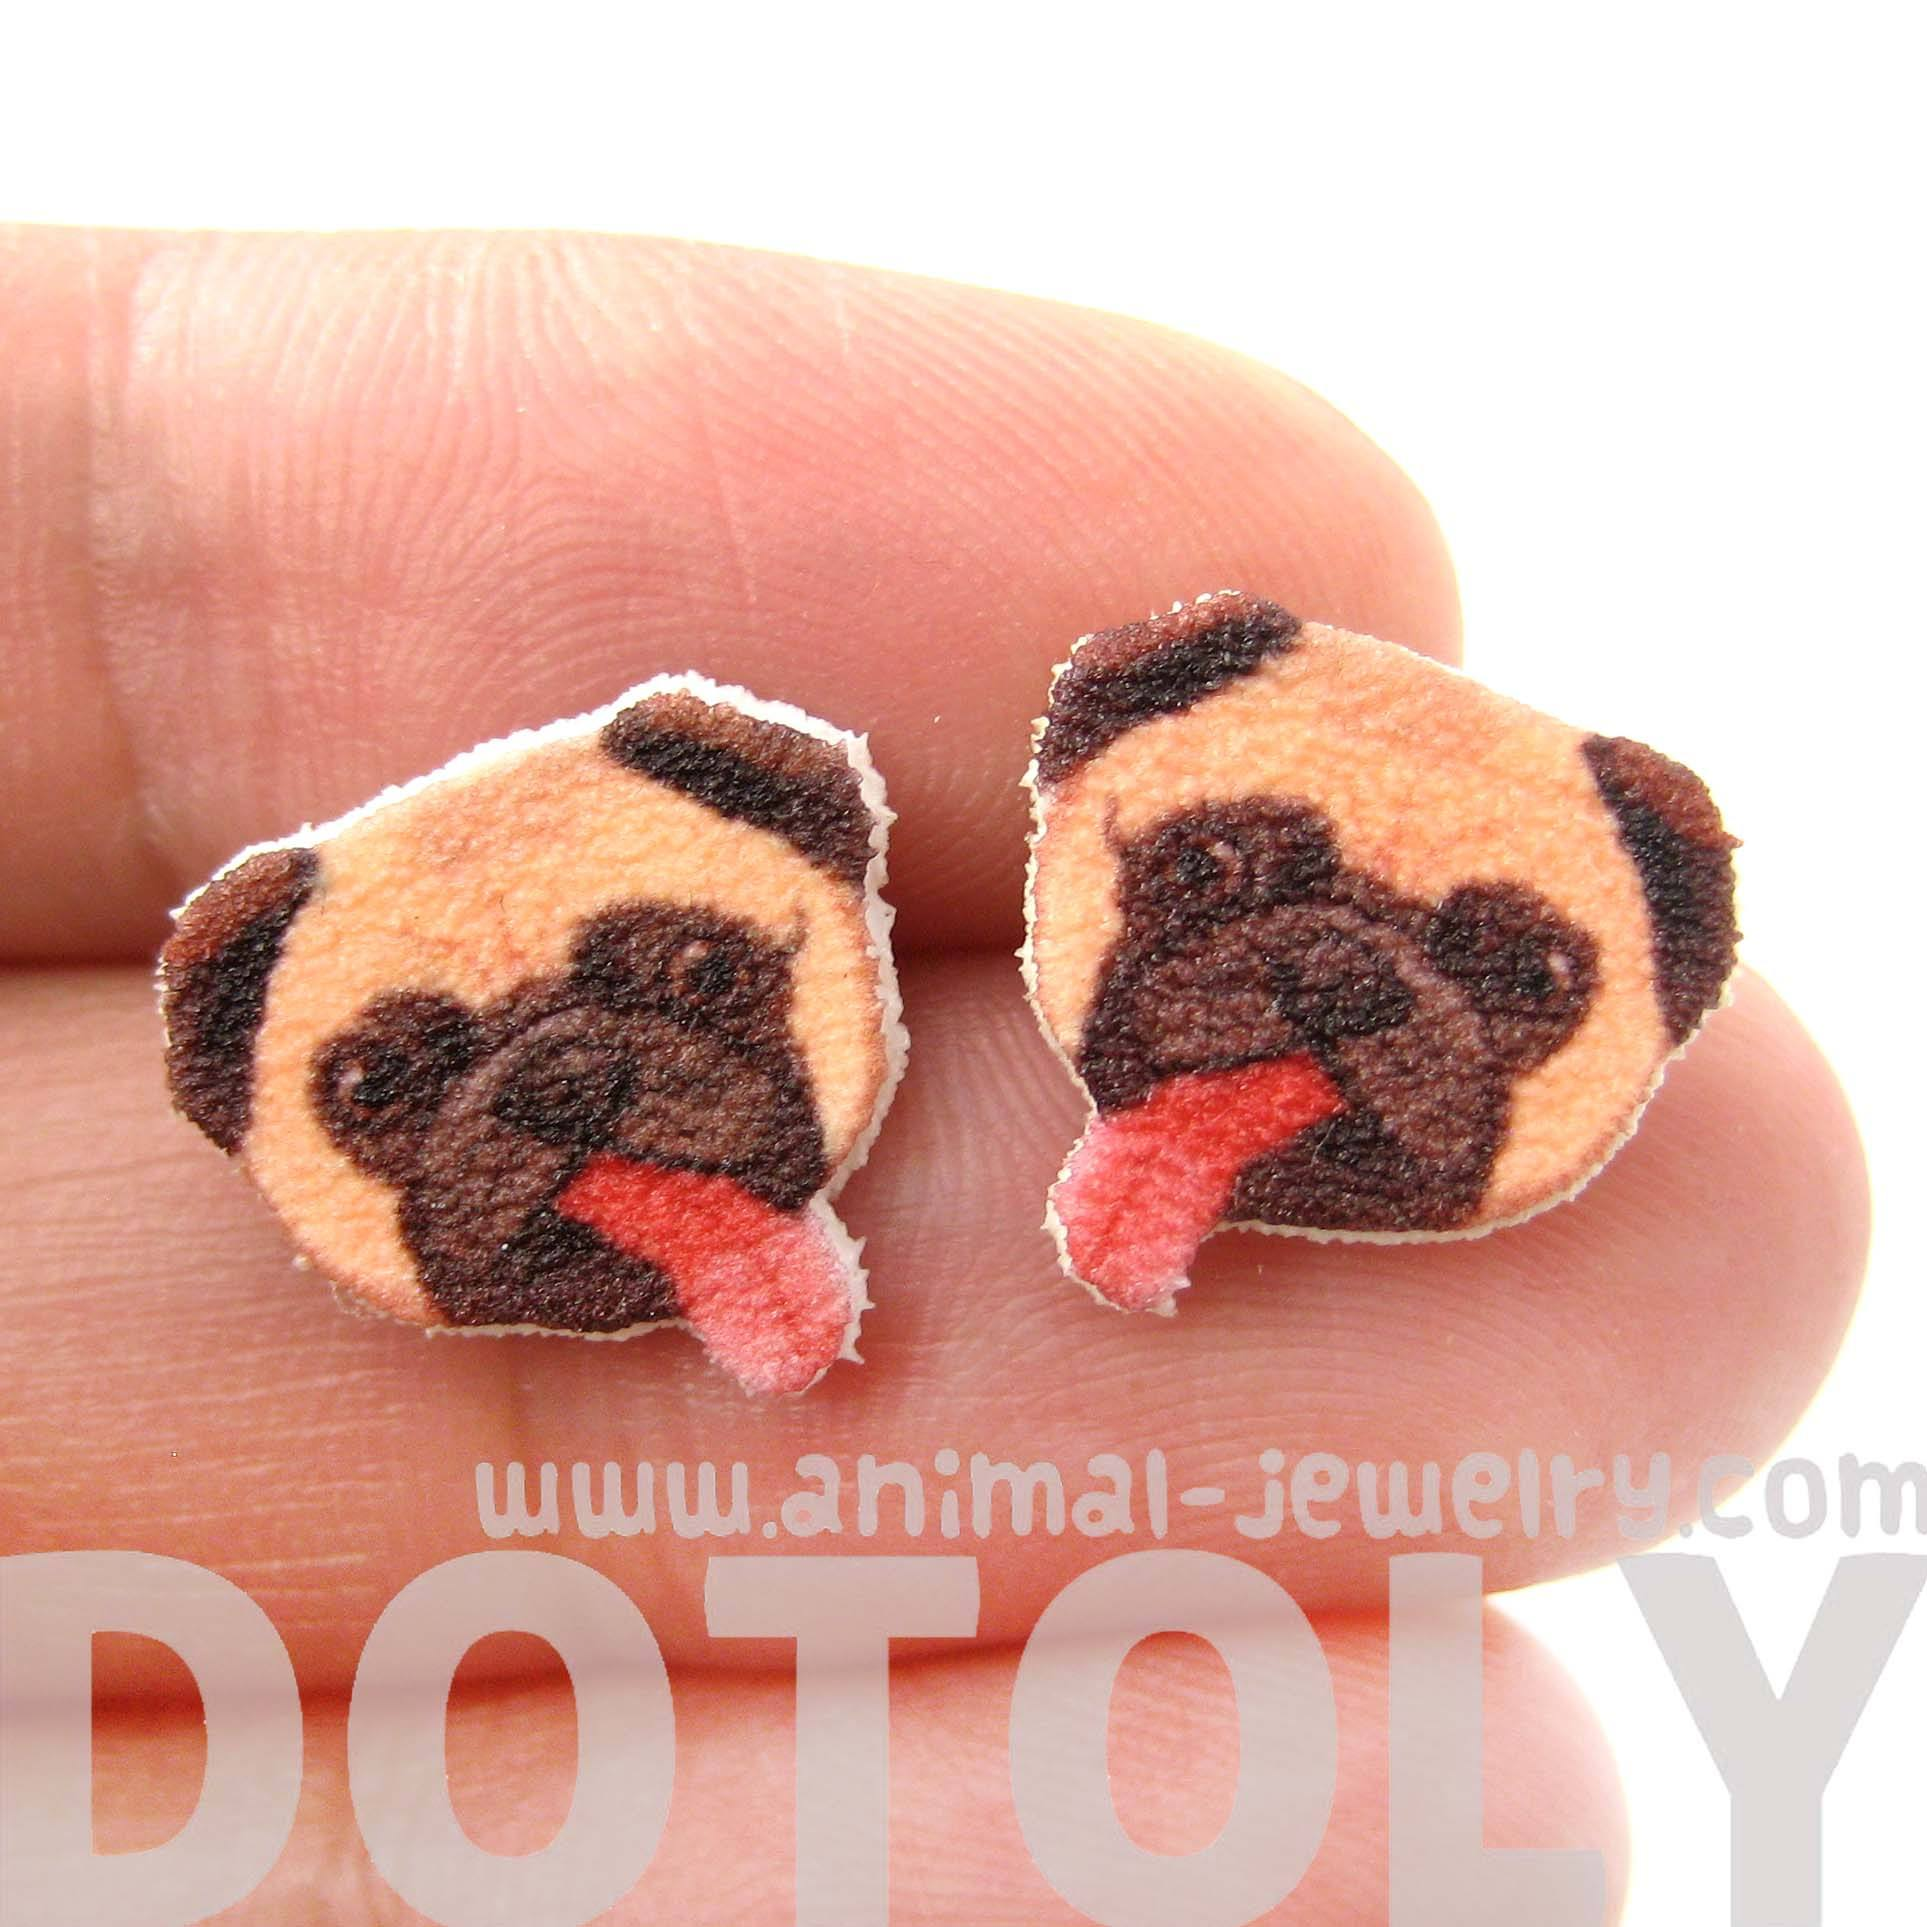 Pug Puppy Dog Animal Head Shaped Stud Earrings With Tongues Sticking Out